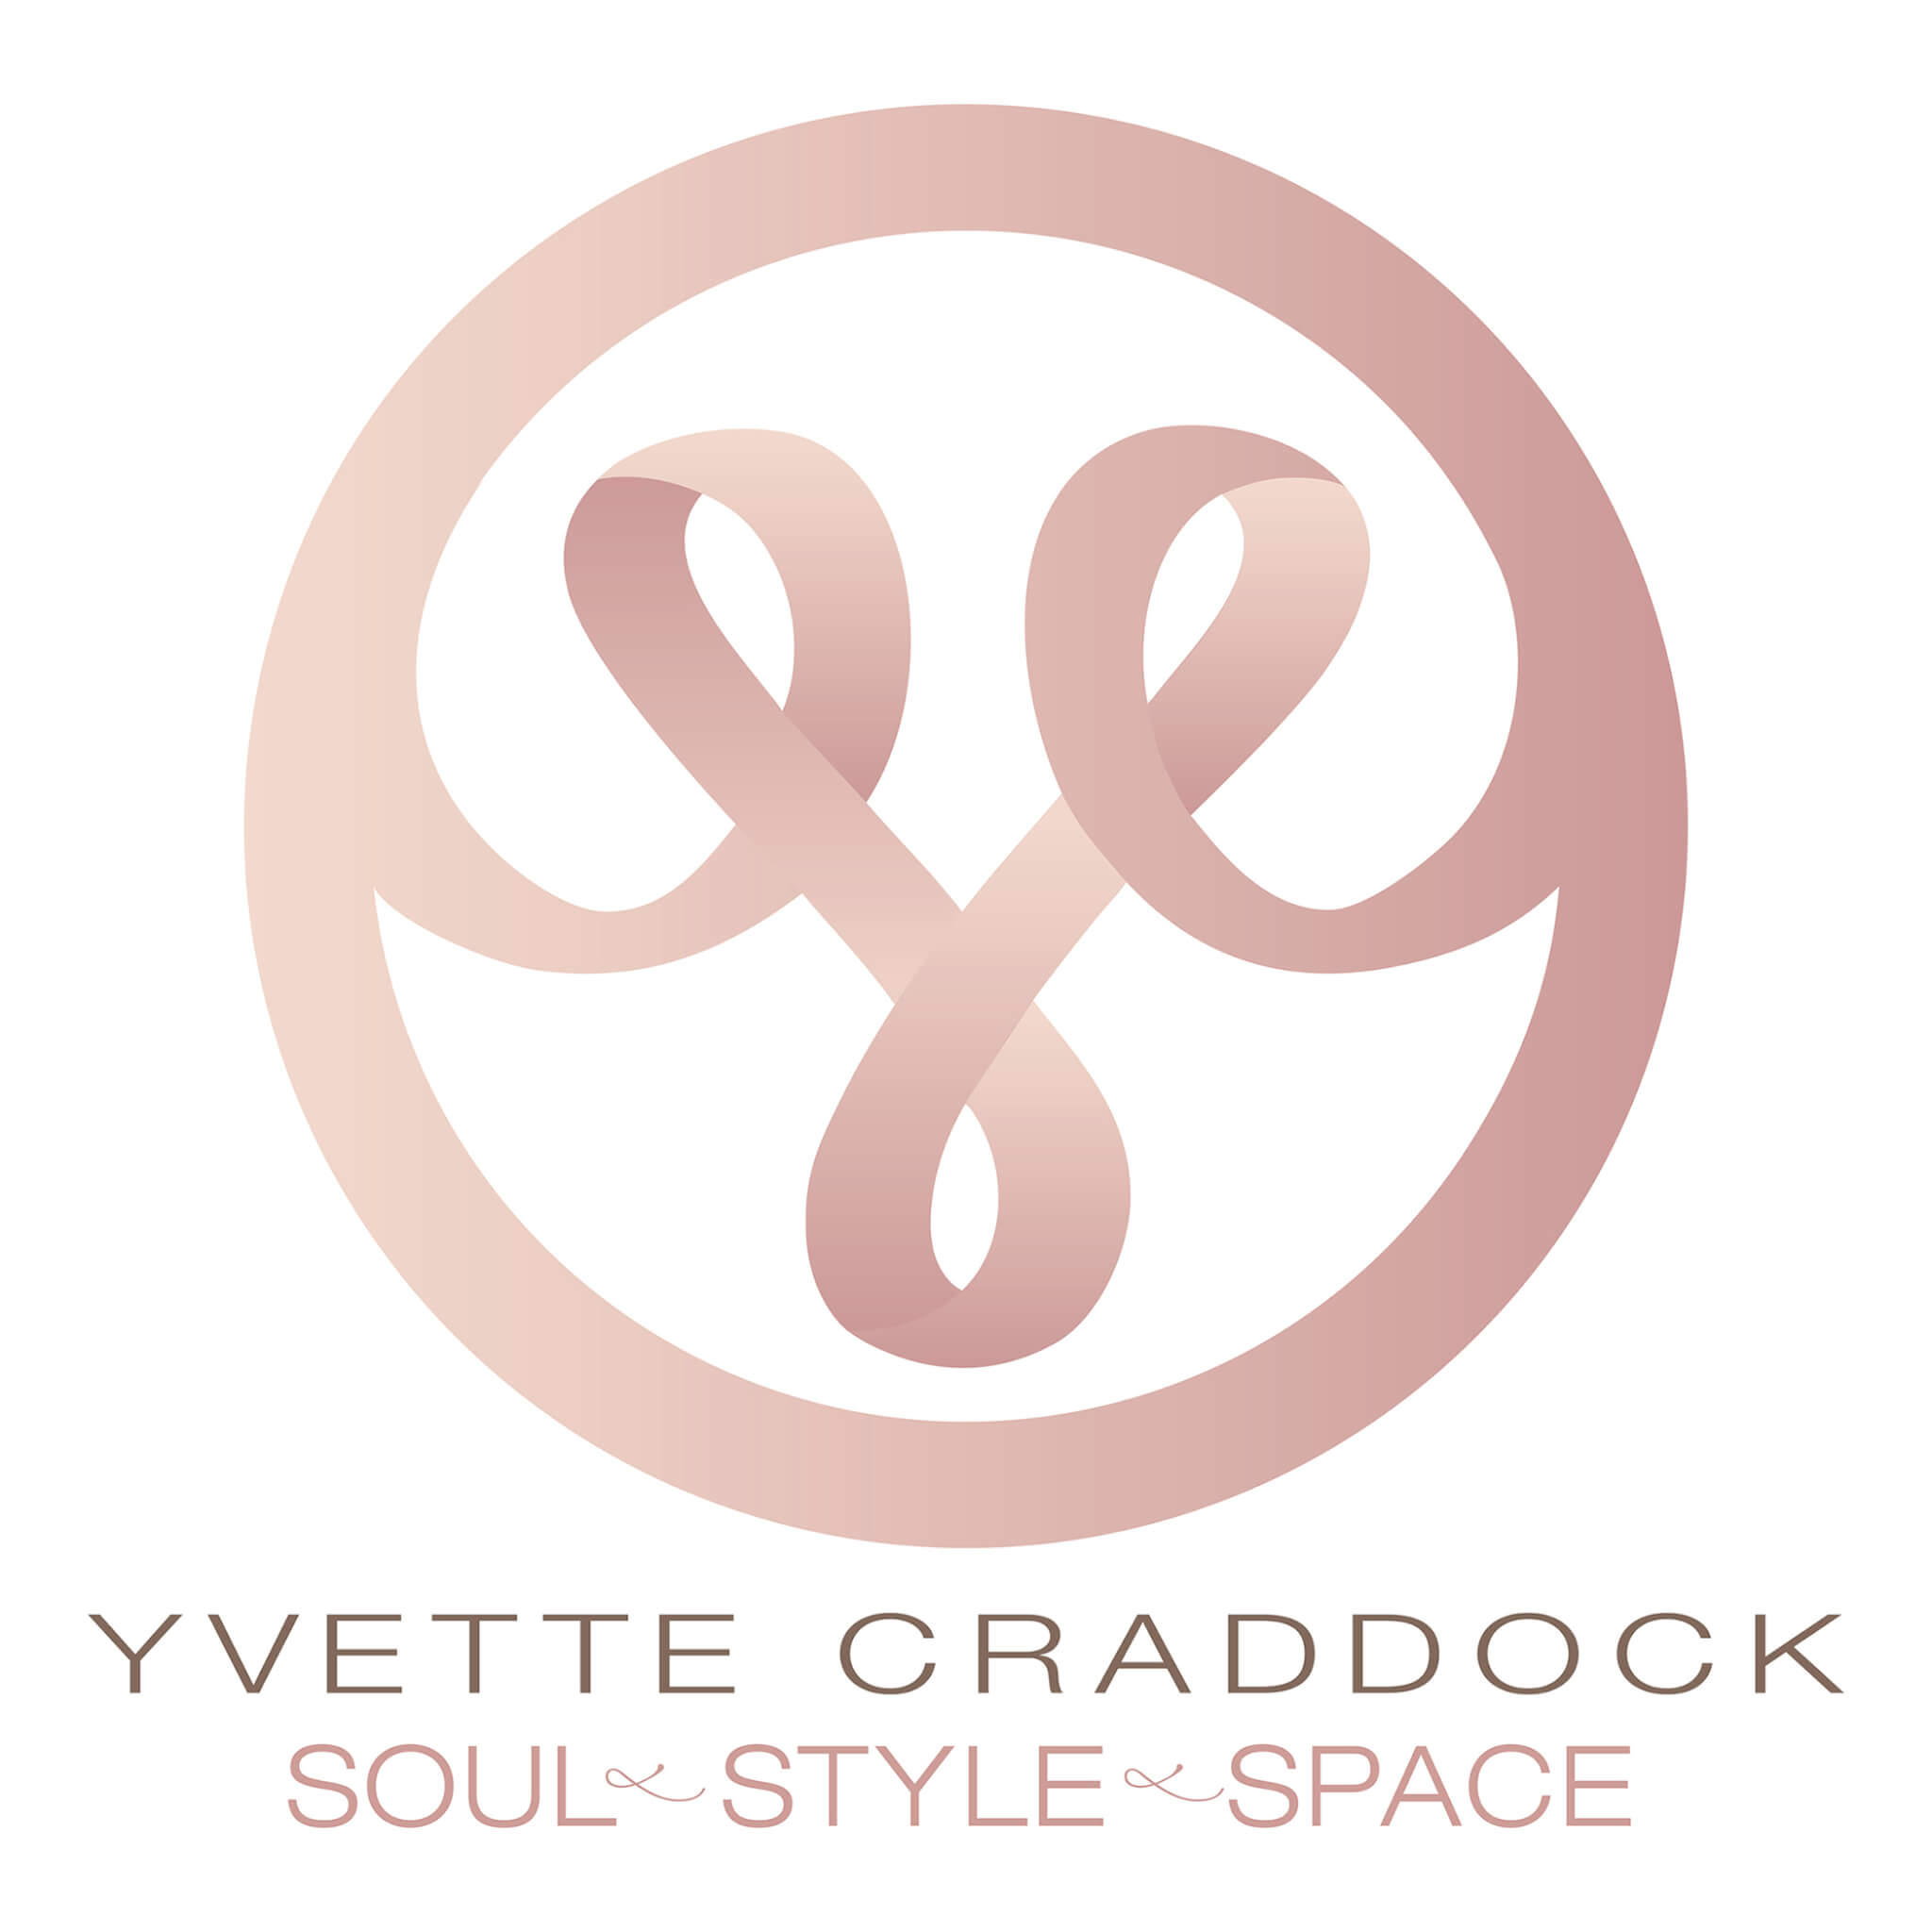 Yvette Craddock Designs - Luxury Interior Design + Tabletop Design + Lifestyle Experiences